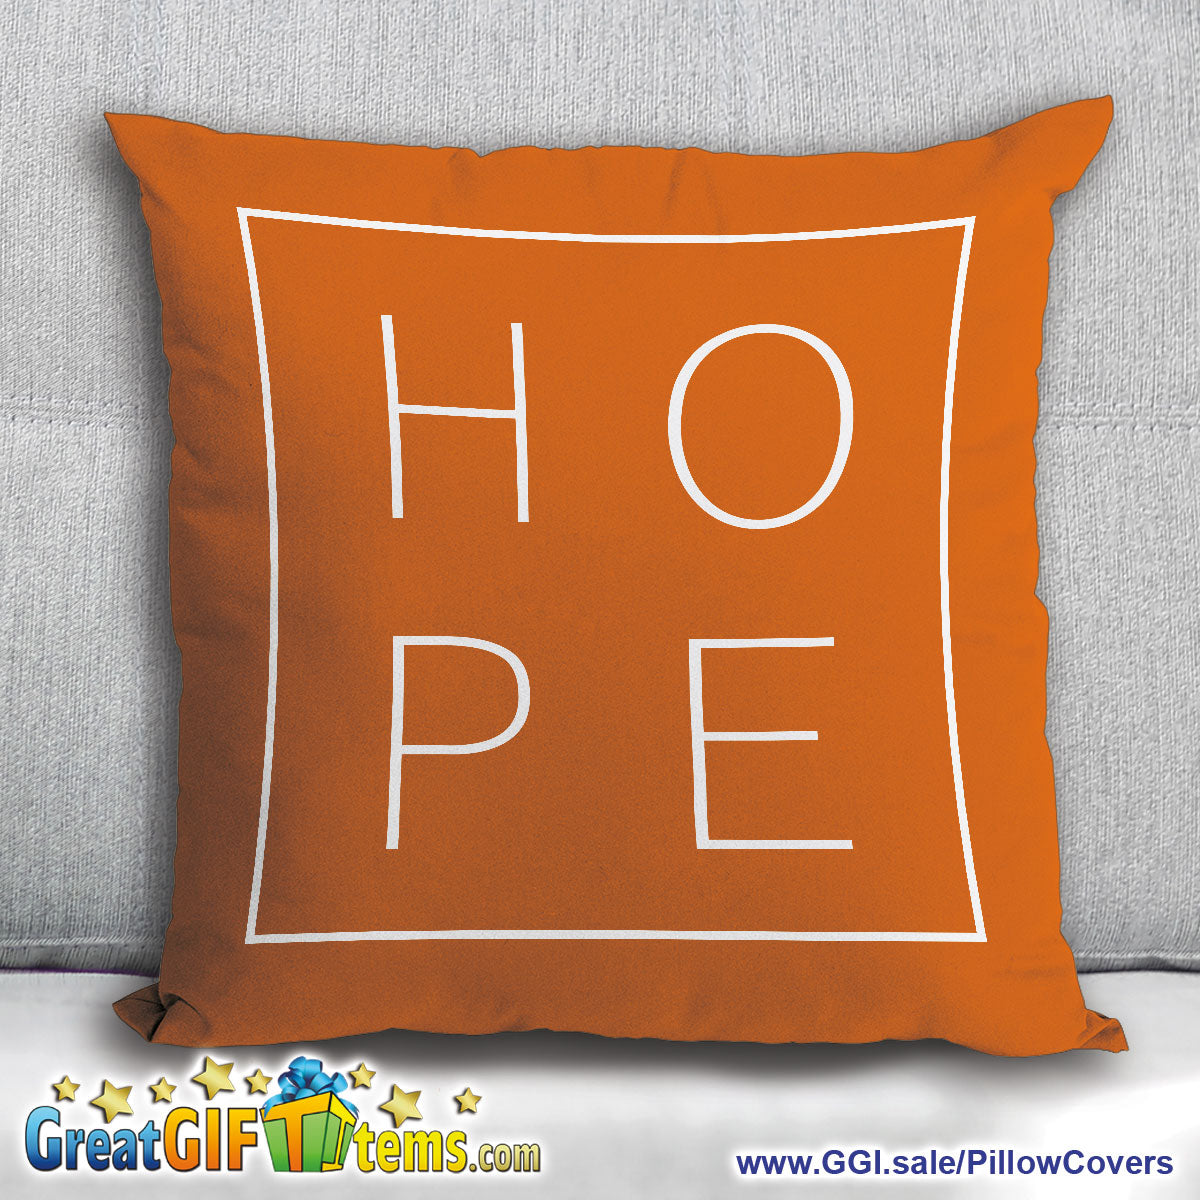 Hope Beautiful Soft Throw Pillow Cover